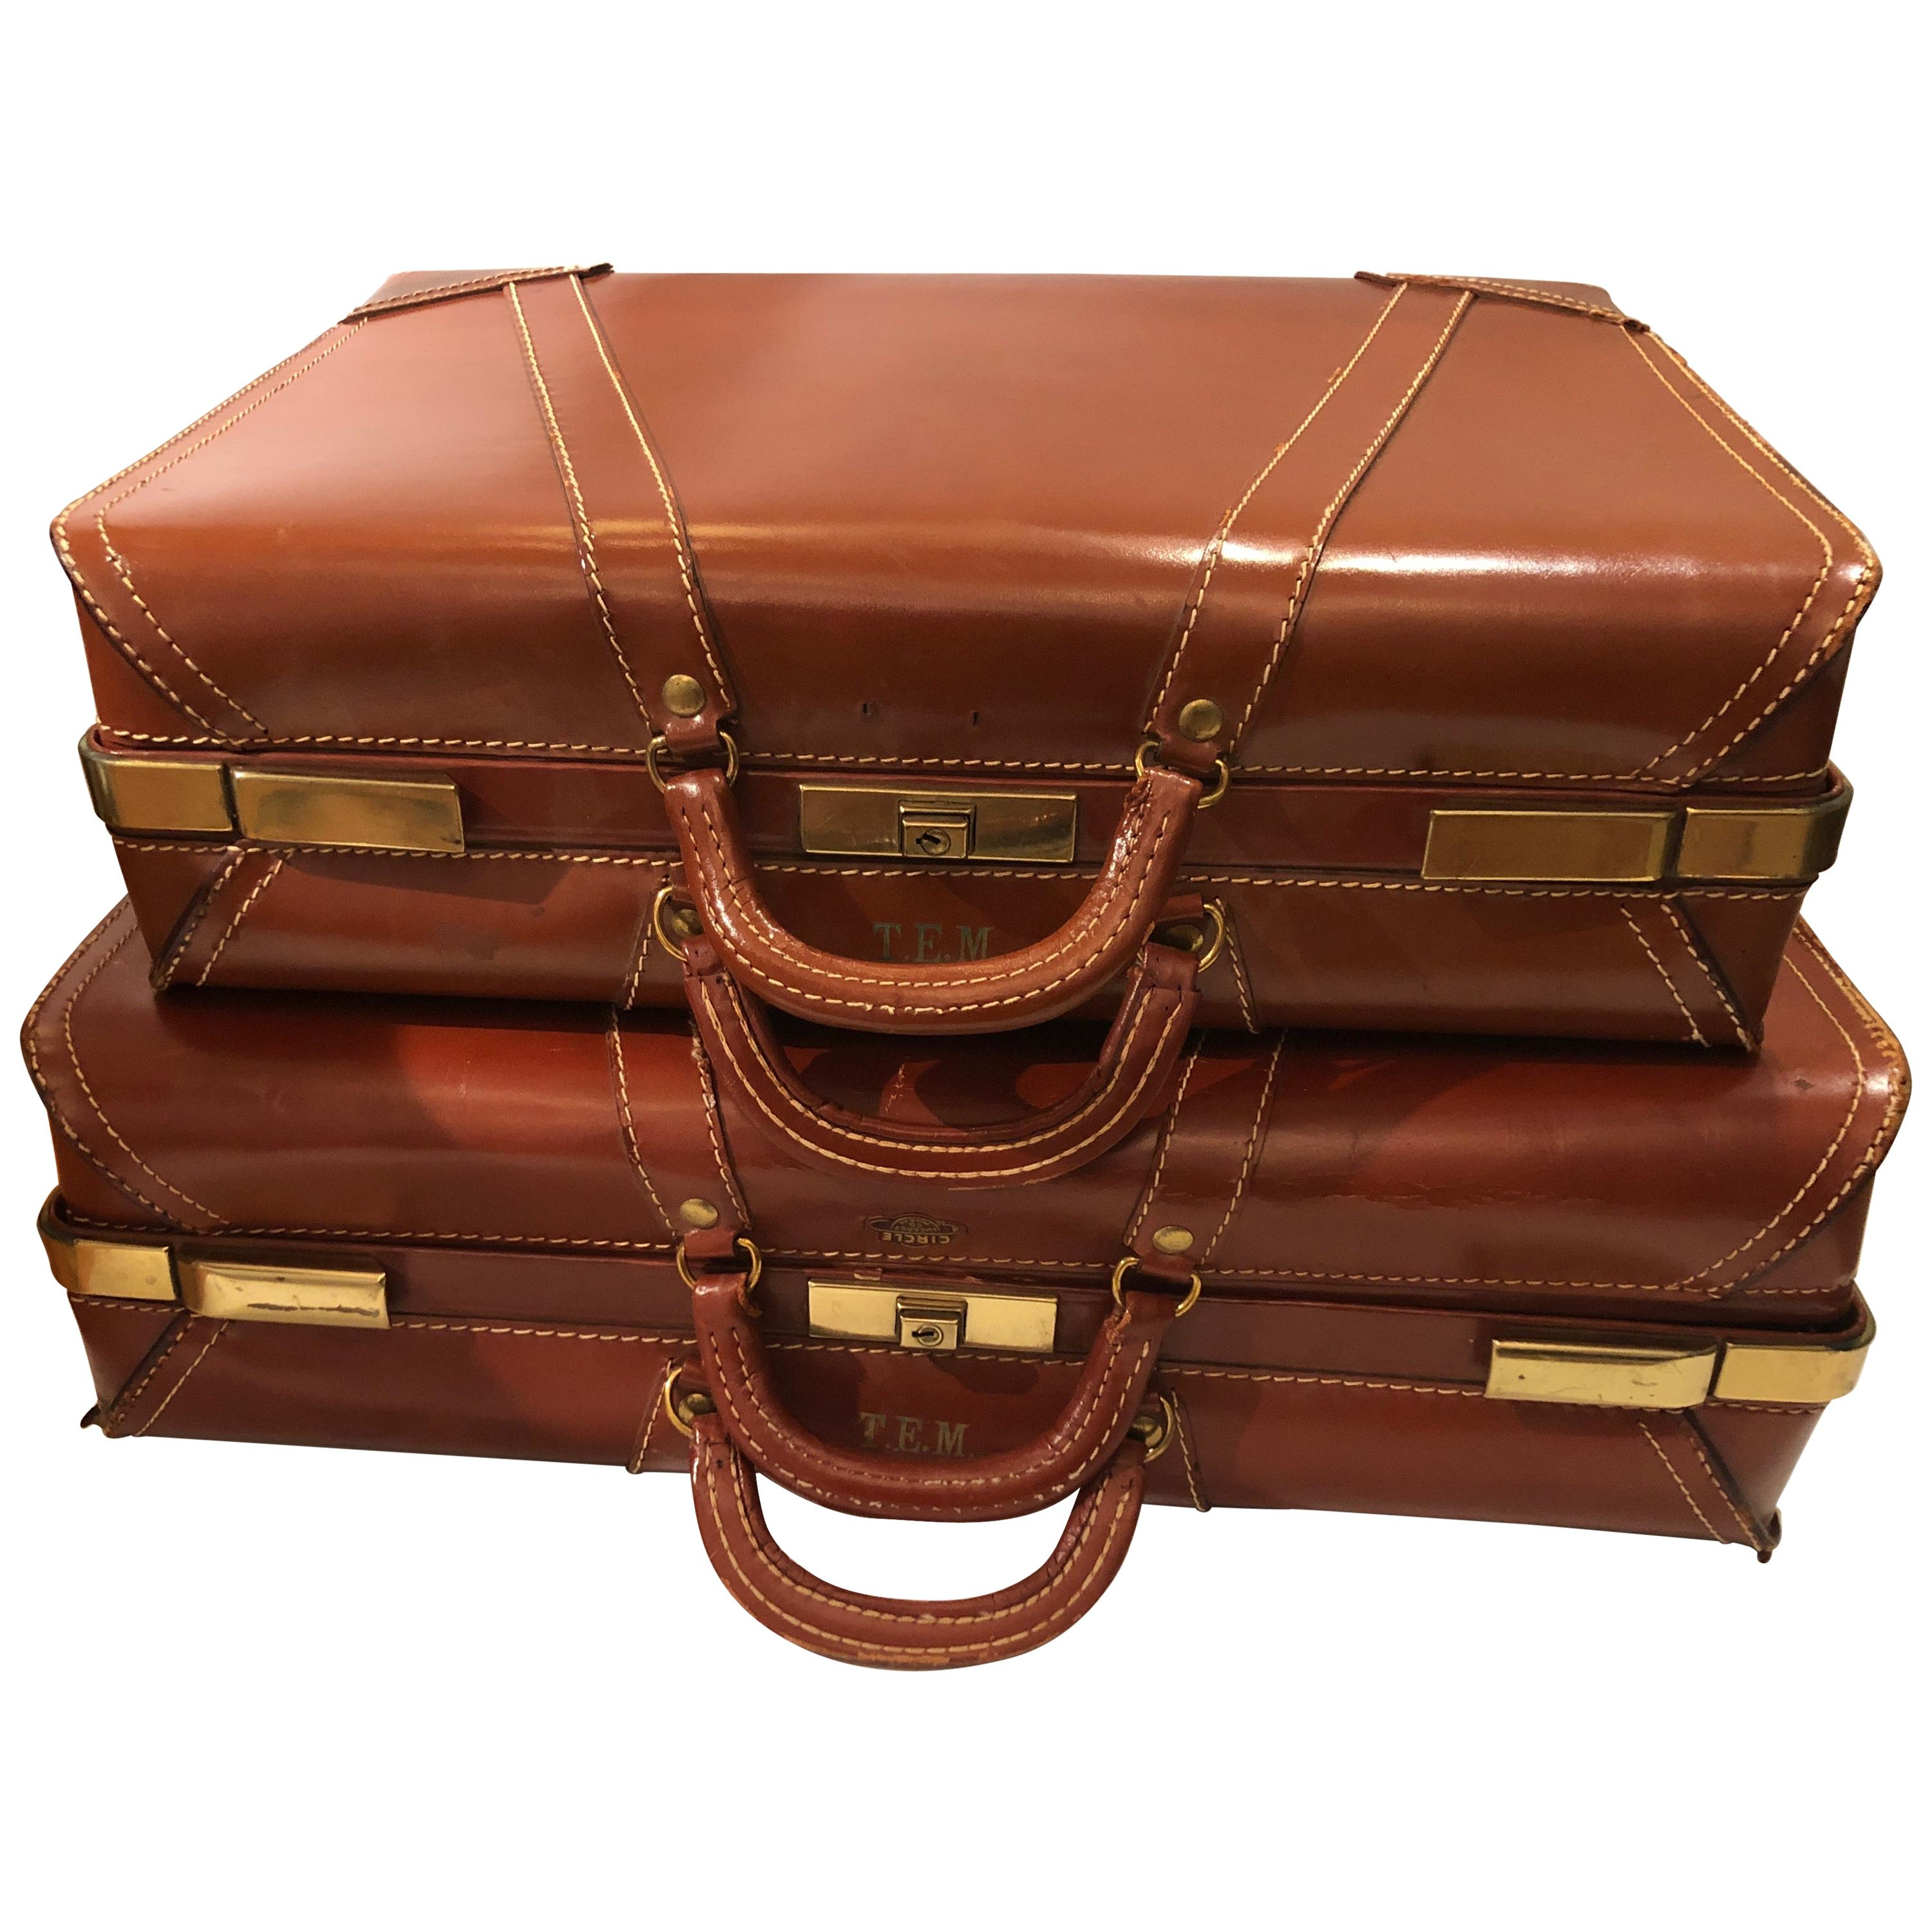 Rich Leather Pair of Vintage Suitcases Luggage